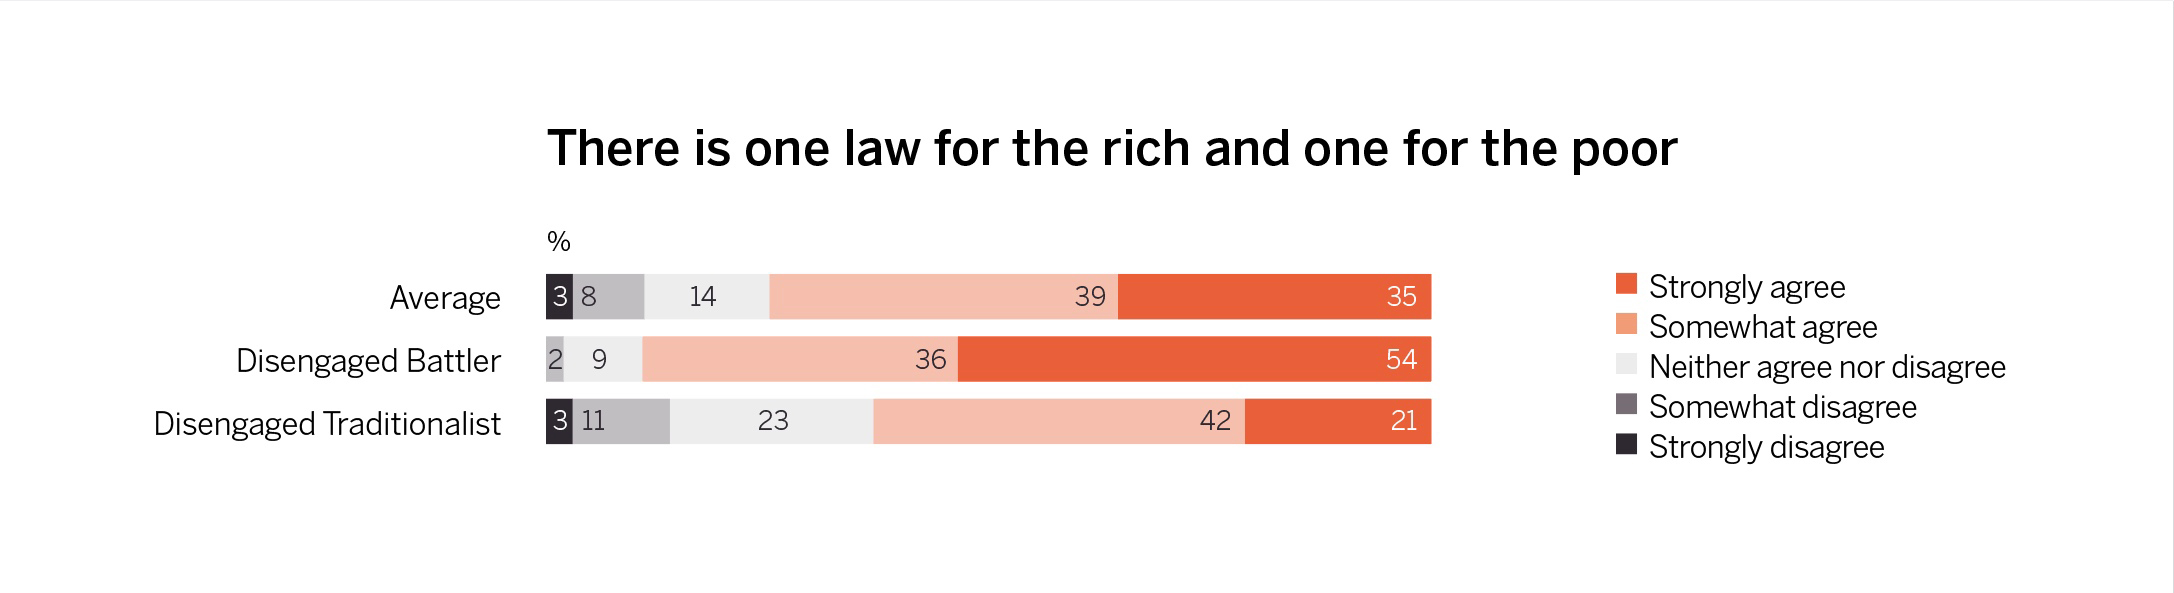 The majority of Disengaged Battlers say there's one law for the rich and one for the poor